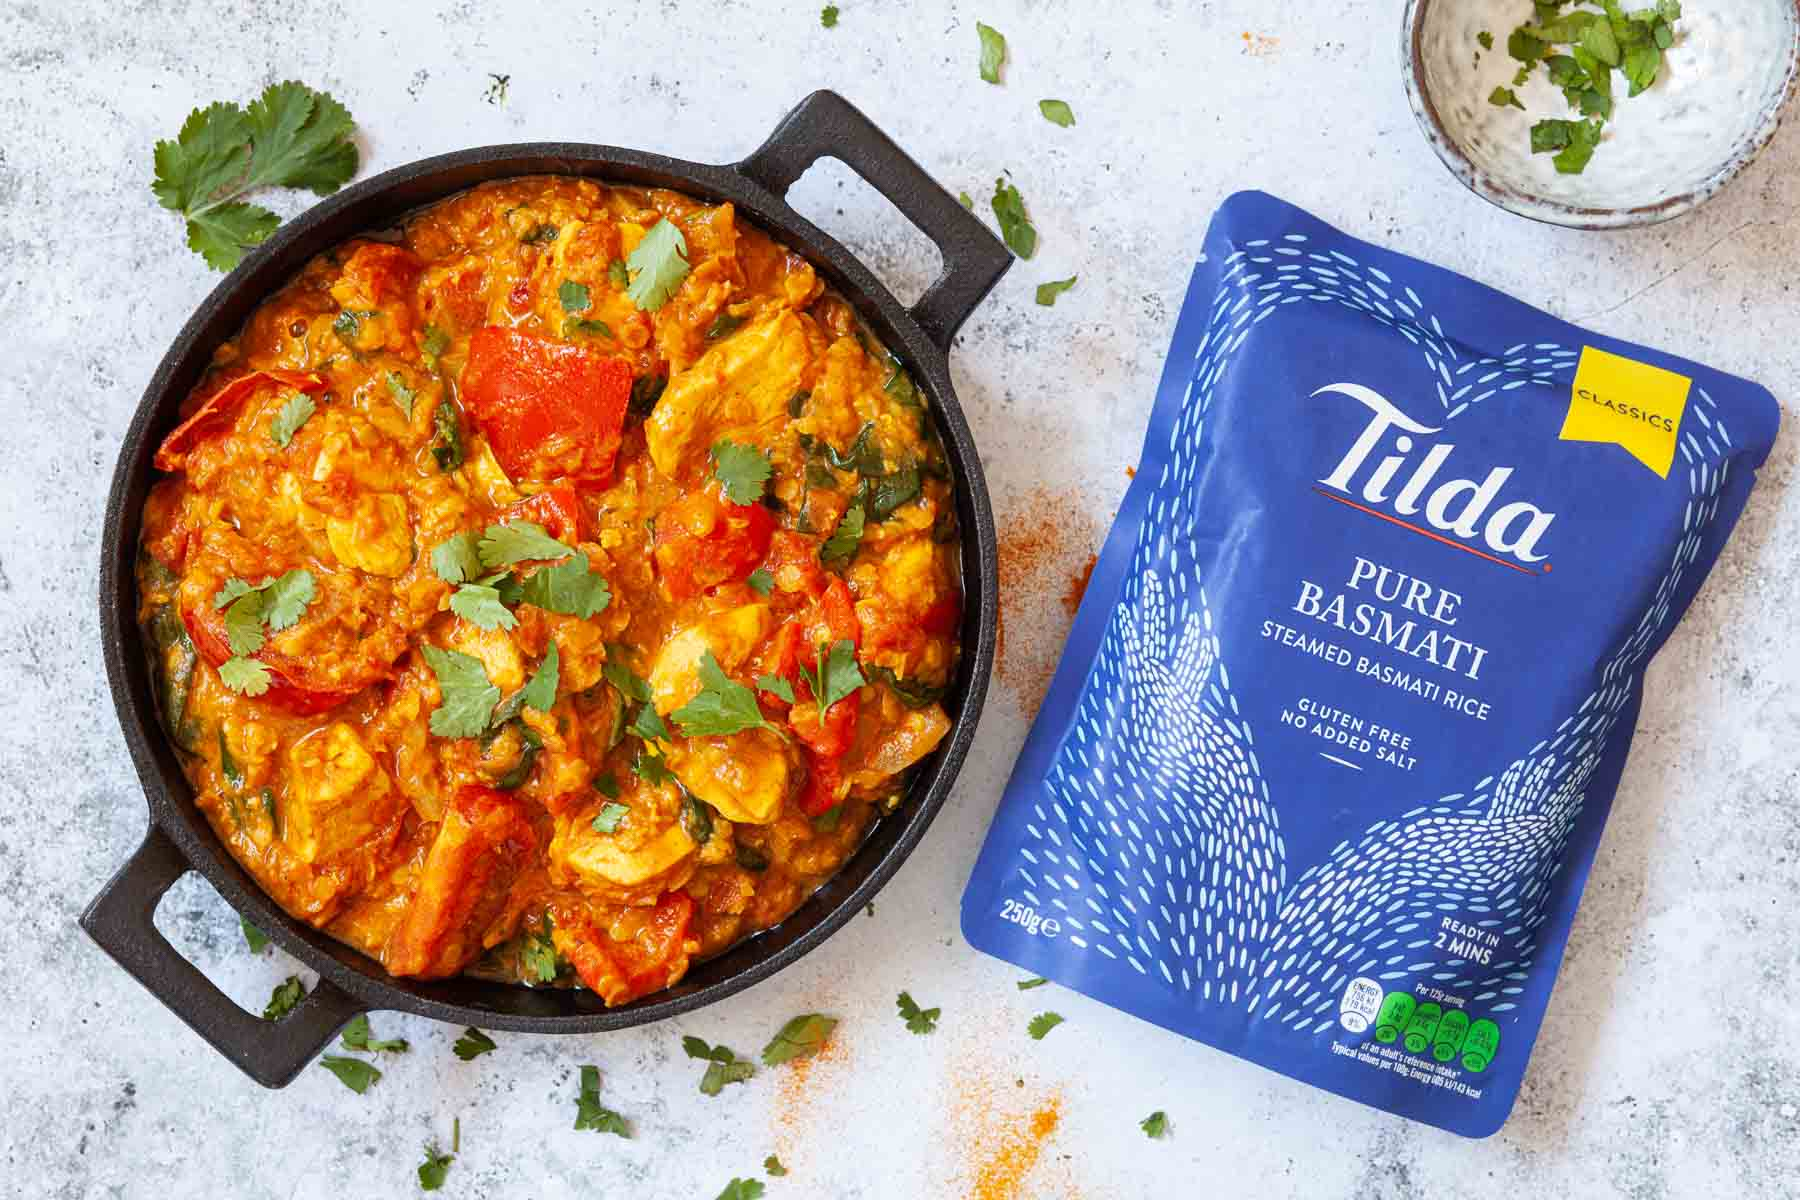 A skillet of chicken and lentil curry with a packet of microwaveable rice